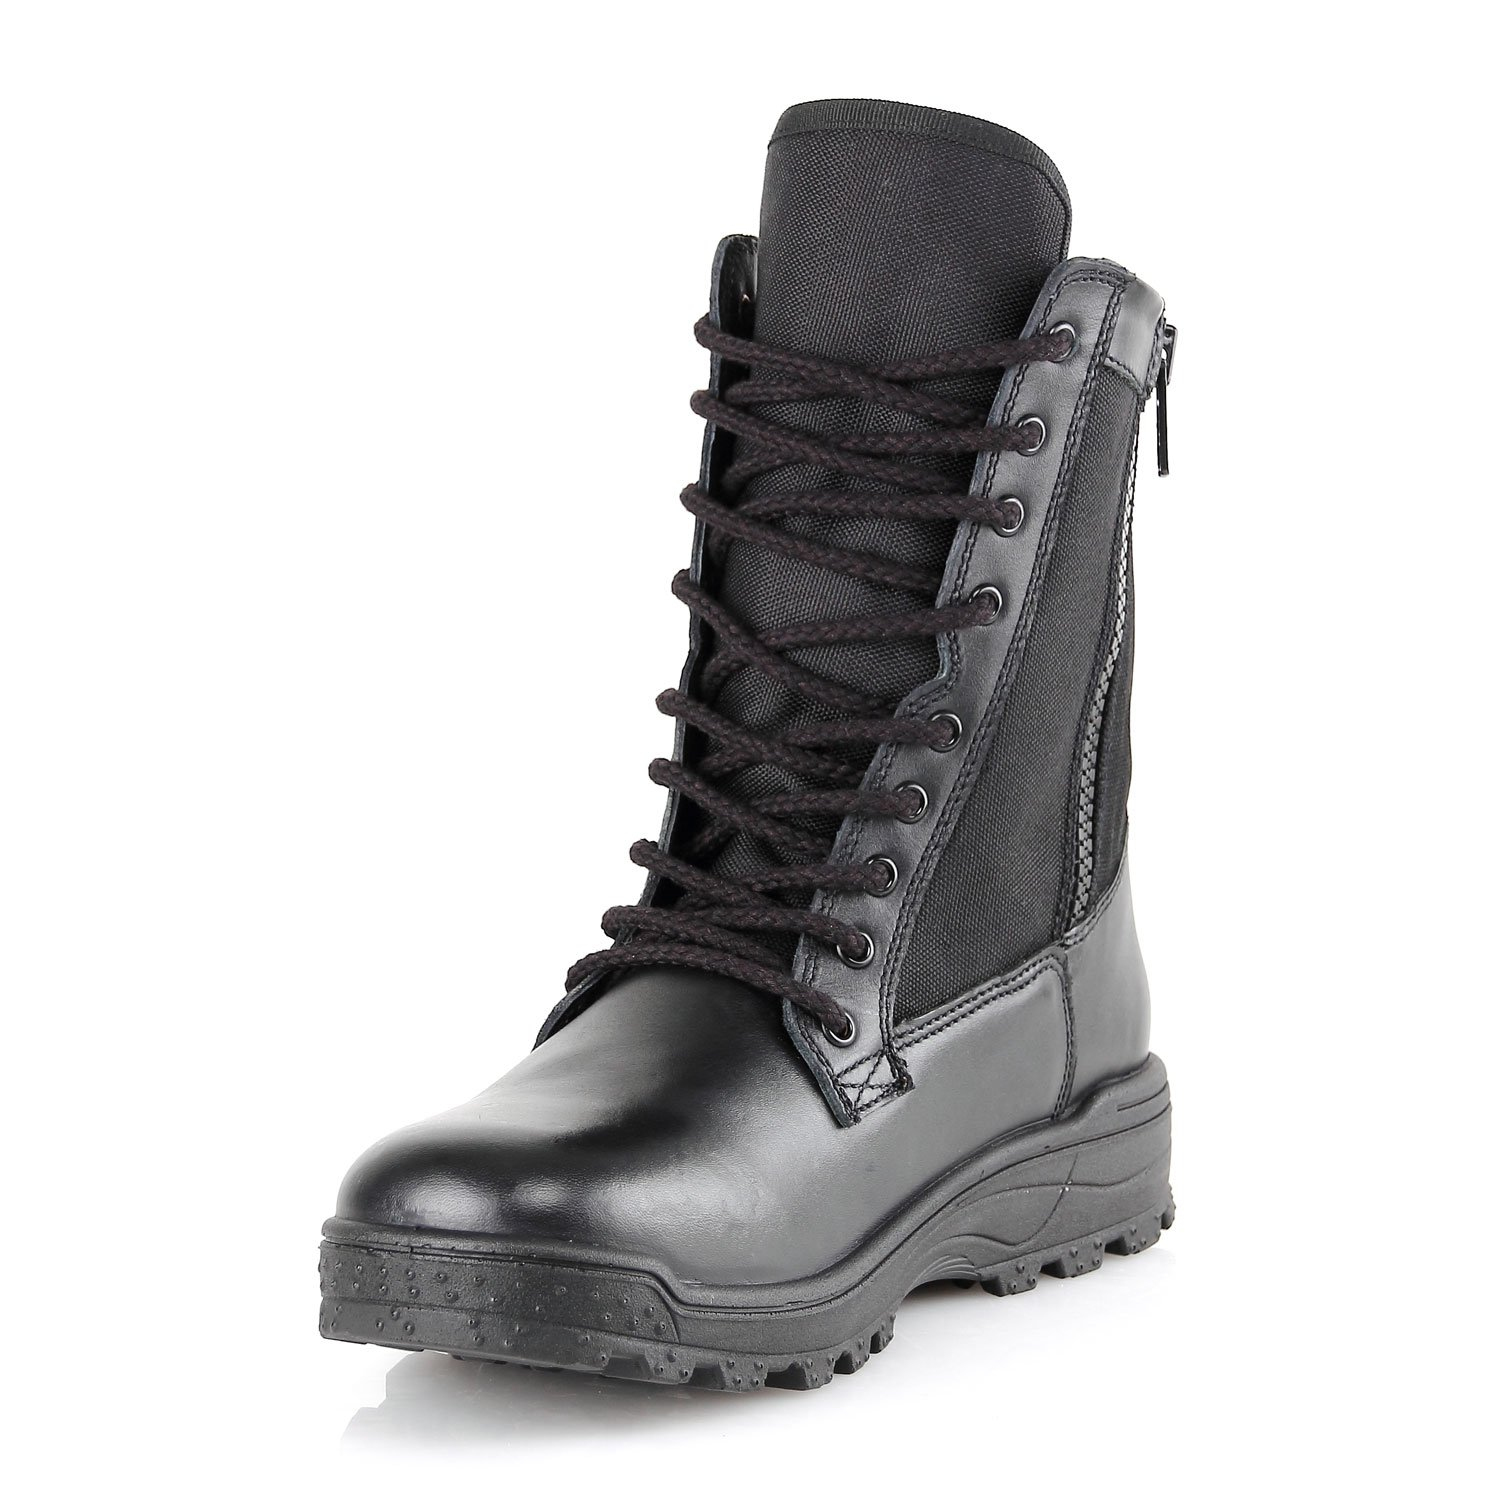 BURG890Z.8i Flex Trainer Duty Boot with Side Zipper - Light Women Weight for Men and Women Light B07912VNBF 41 EU (US Mens 8.5 / Ladies 9.5 - 10)|Black 0dc69b